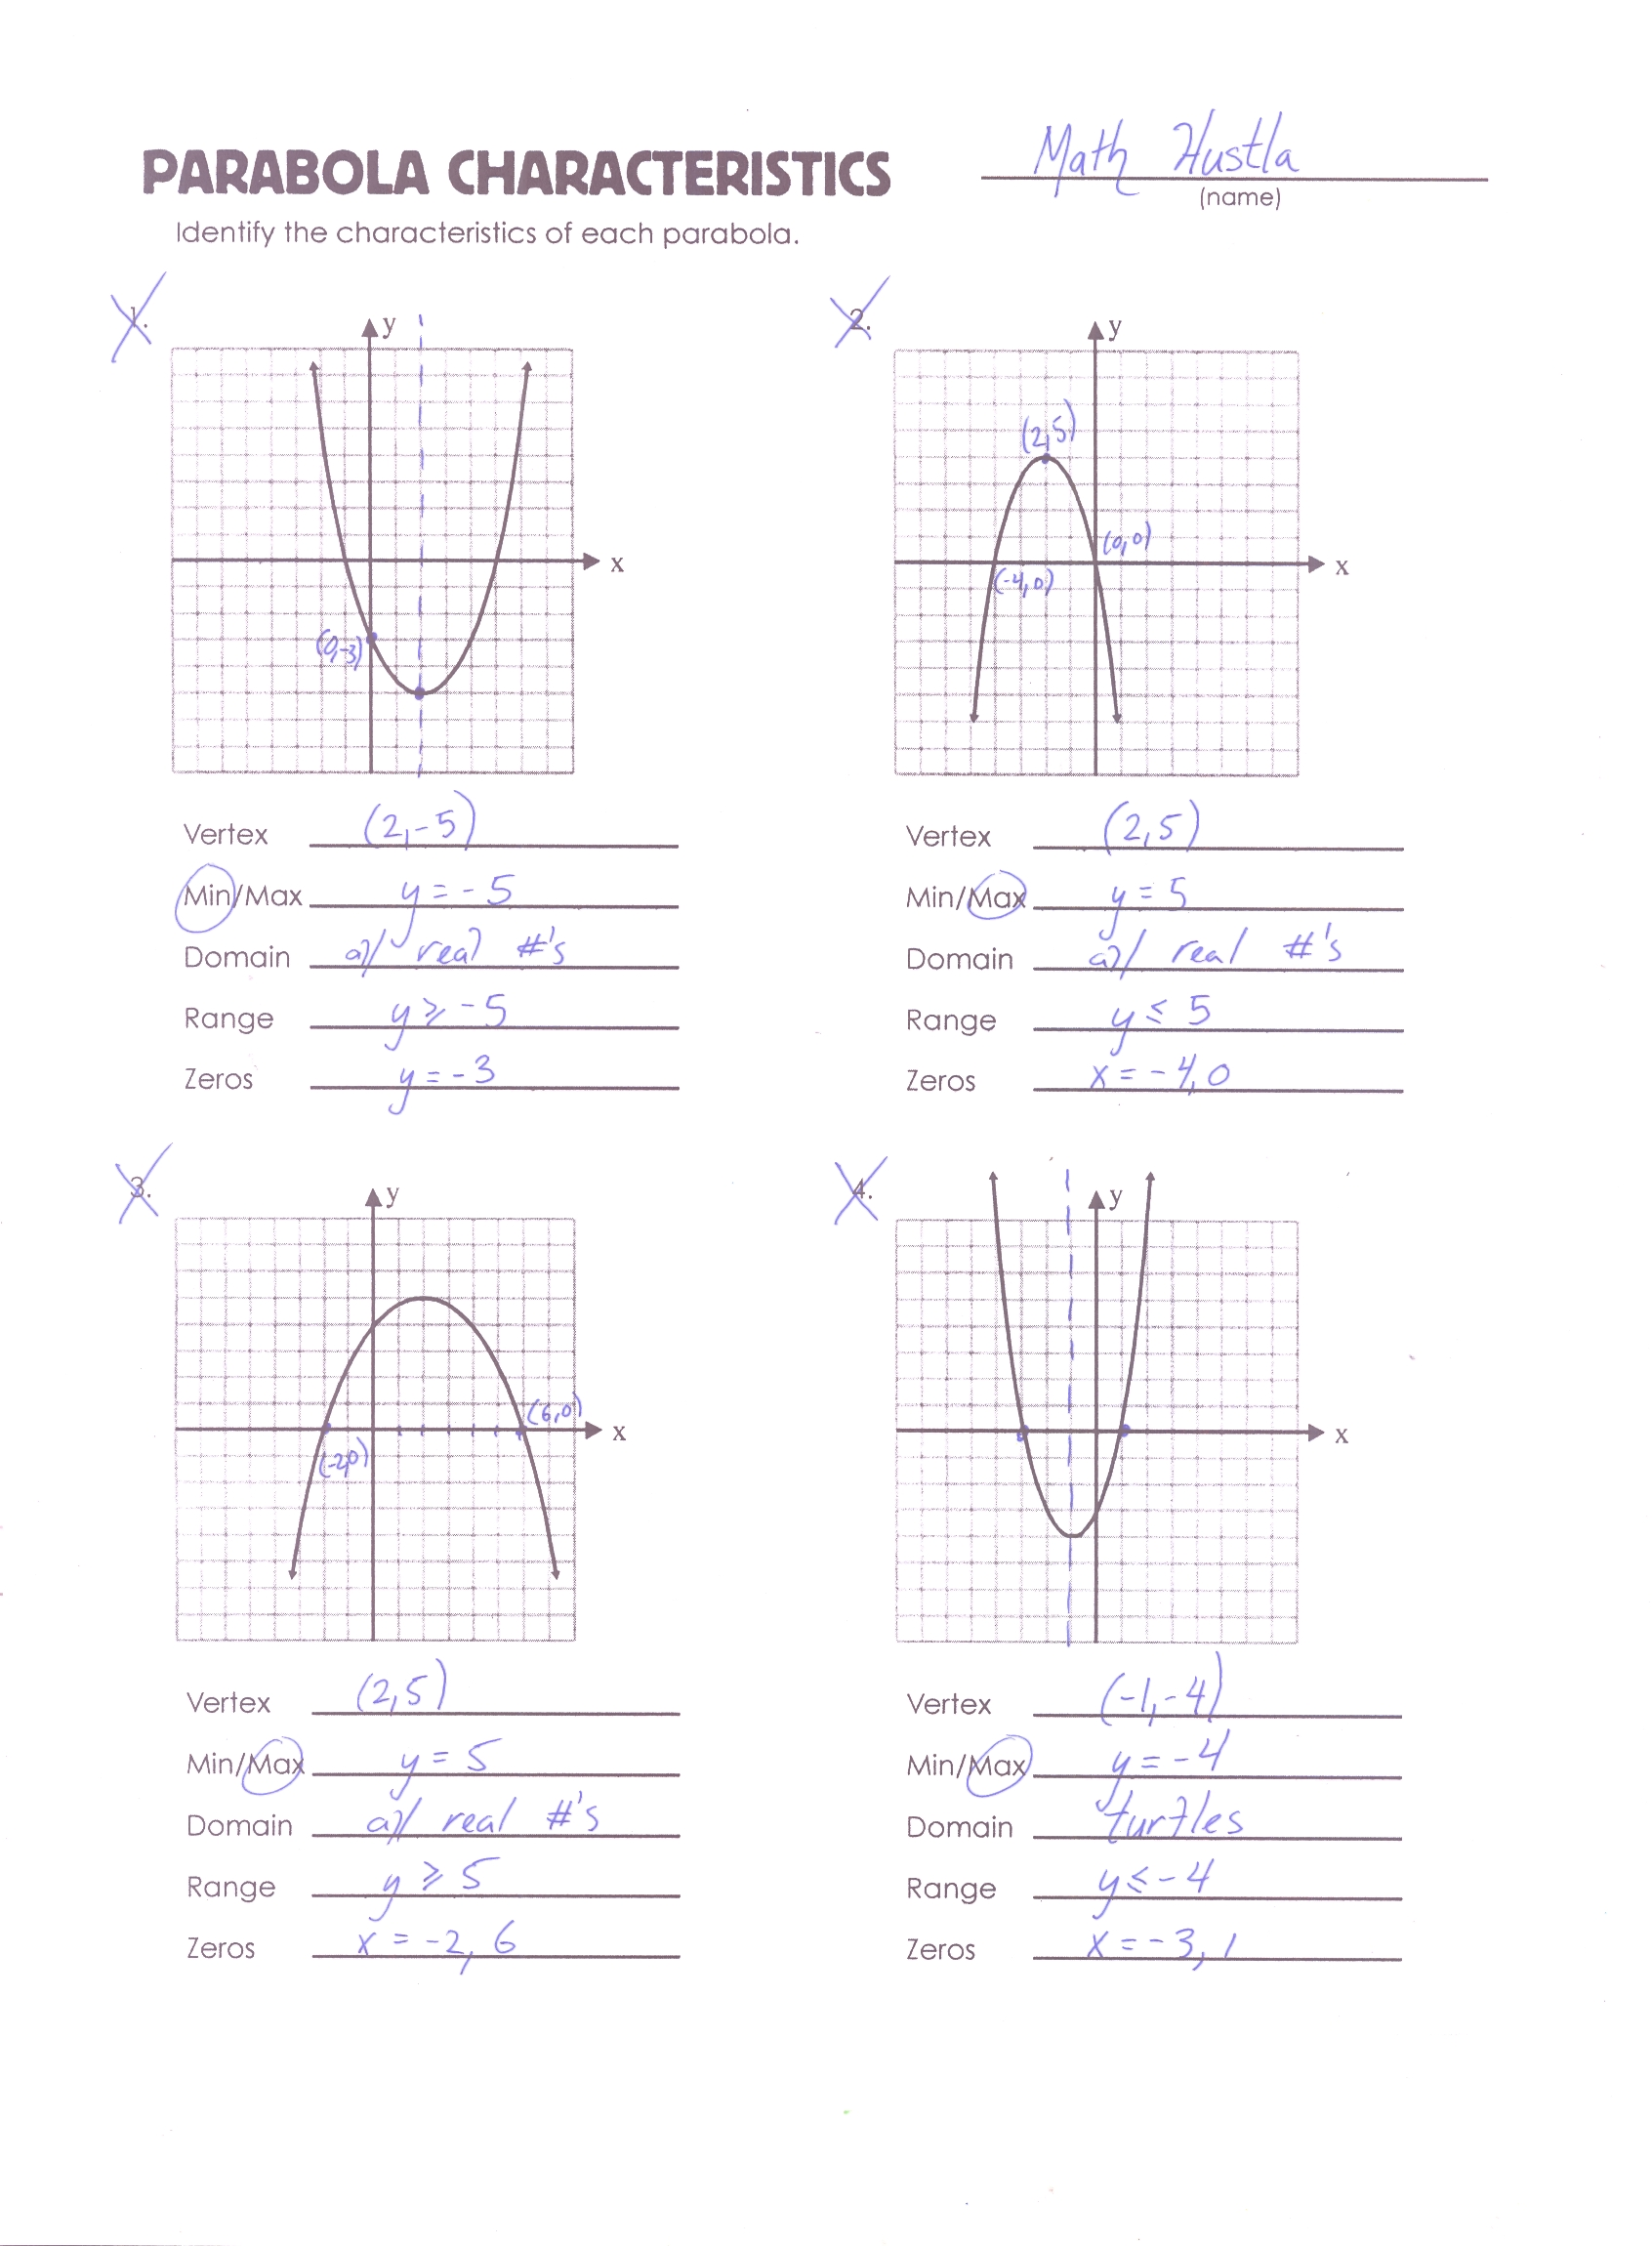 worksheet Parabola Worksheet parabola review worksheet mrmillermath mathhustlaerror